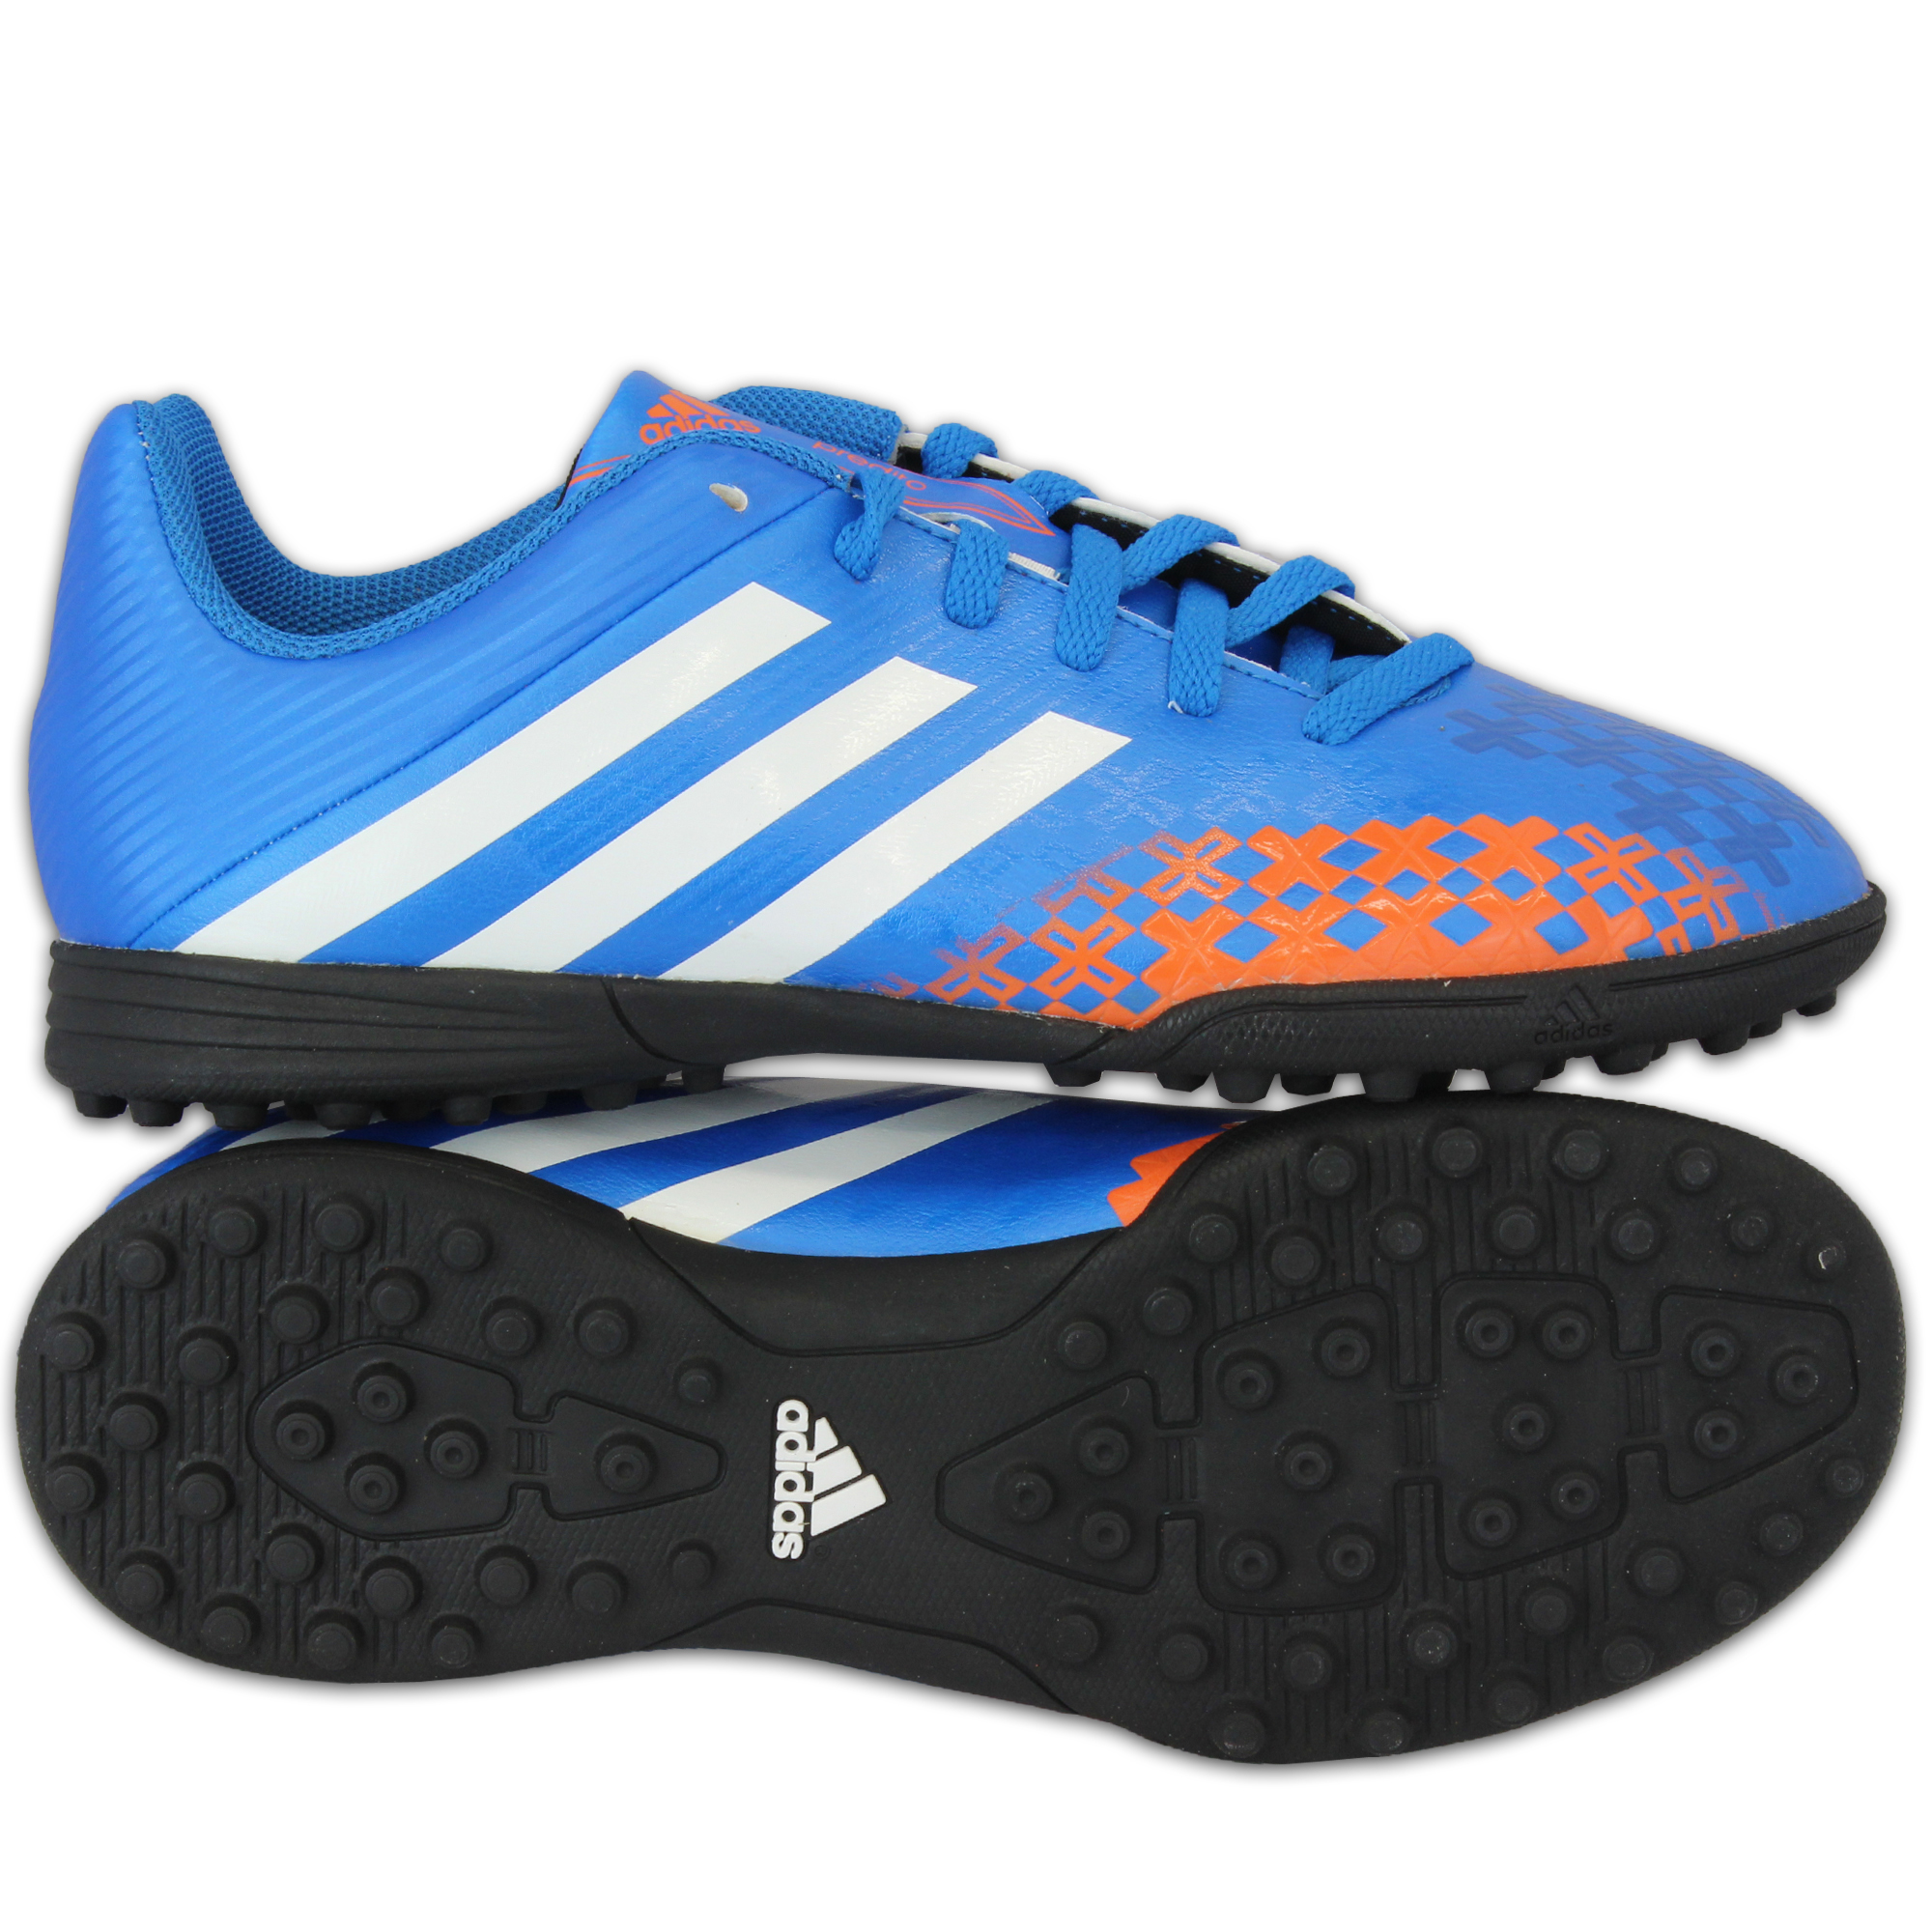 10a3d0911 Boys ADIDAS Trainers Kids Football Soccer Astro Turf Shoes Lace Up Neon  Youth